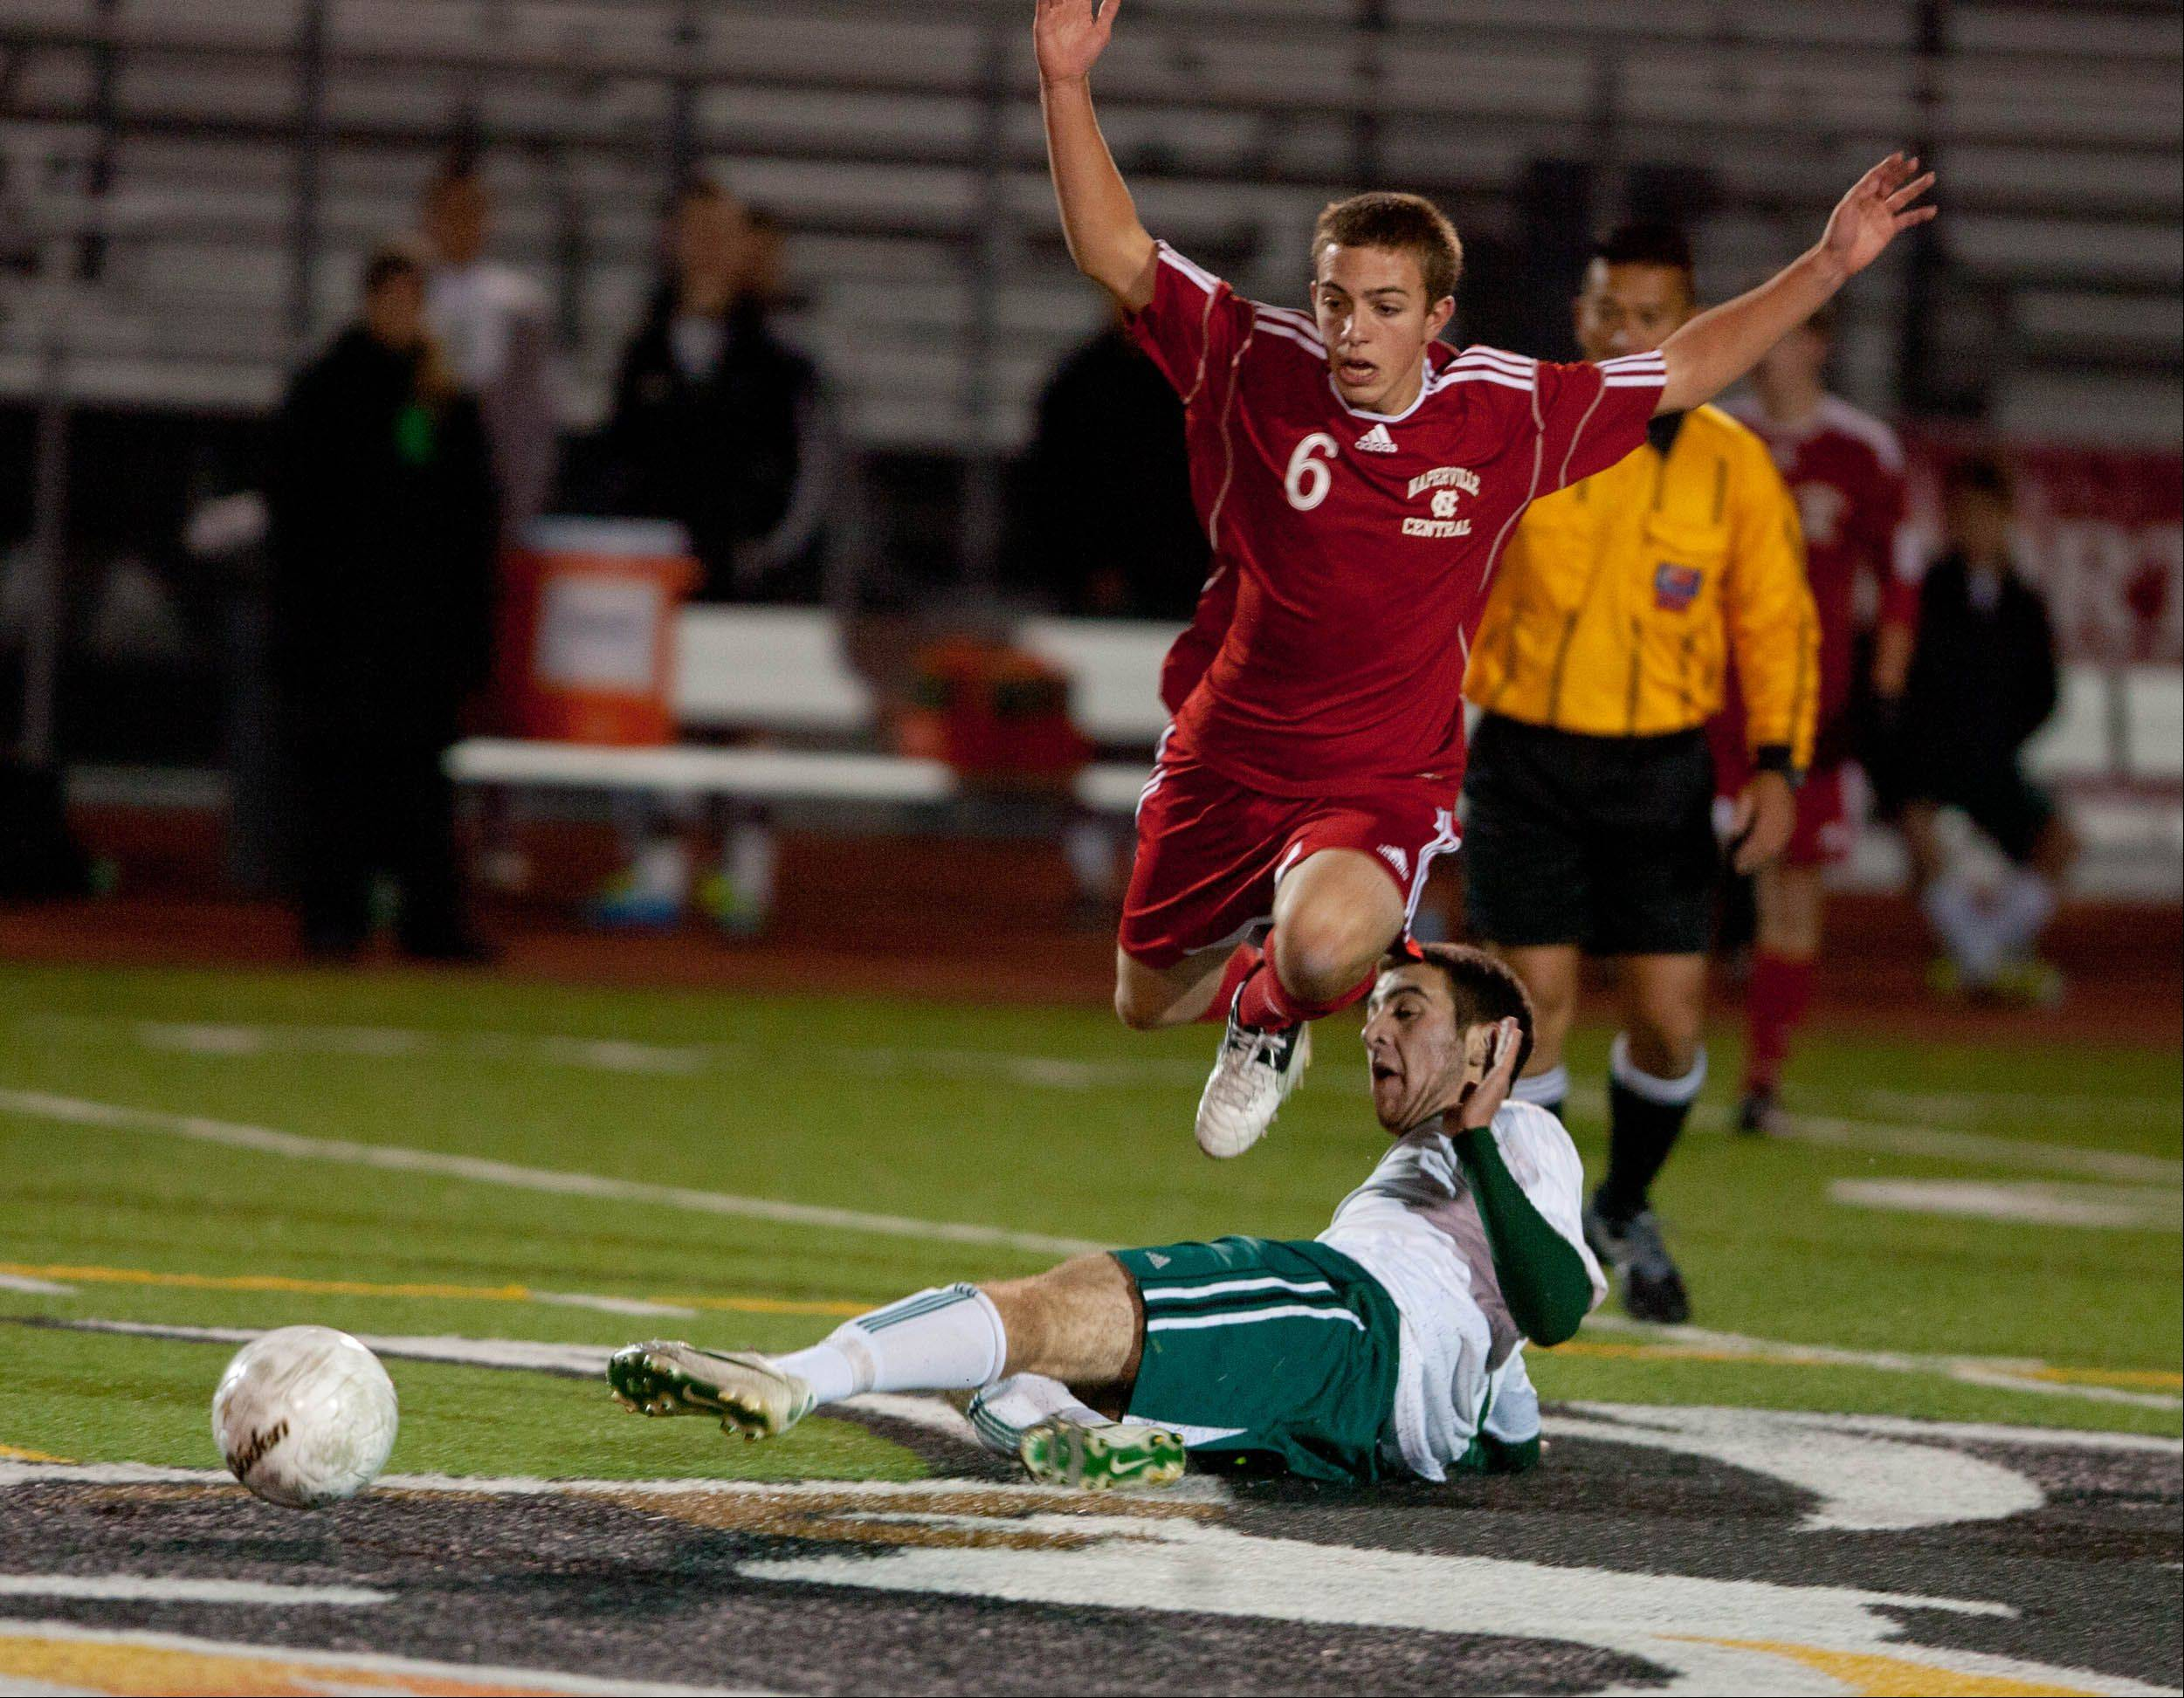 Naperville Central's Mike West, (6), battles Stevenson's, Alex Drexler, during the boys 3A state semifinal soccer match held at Lincoln-Way North High School.